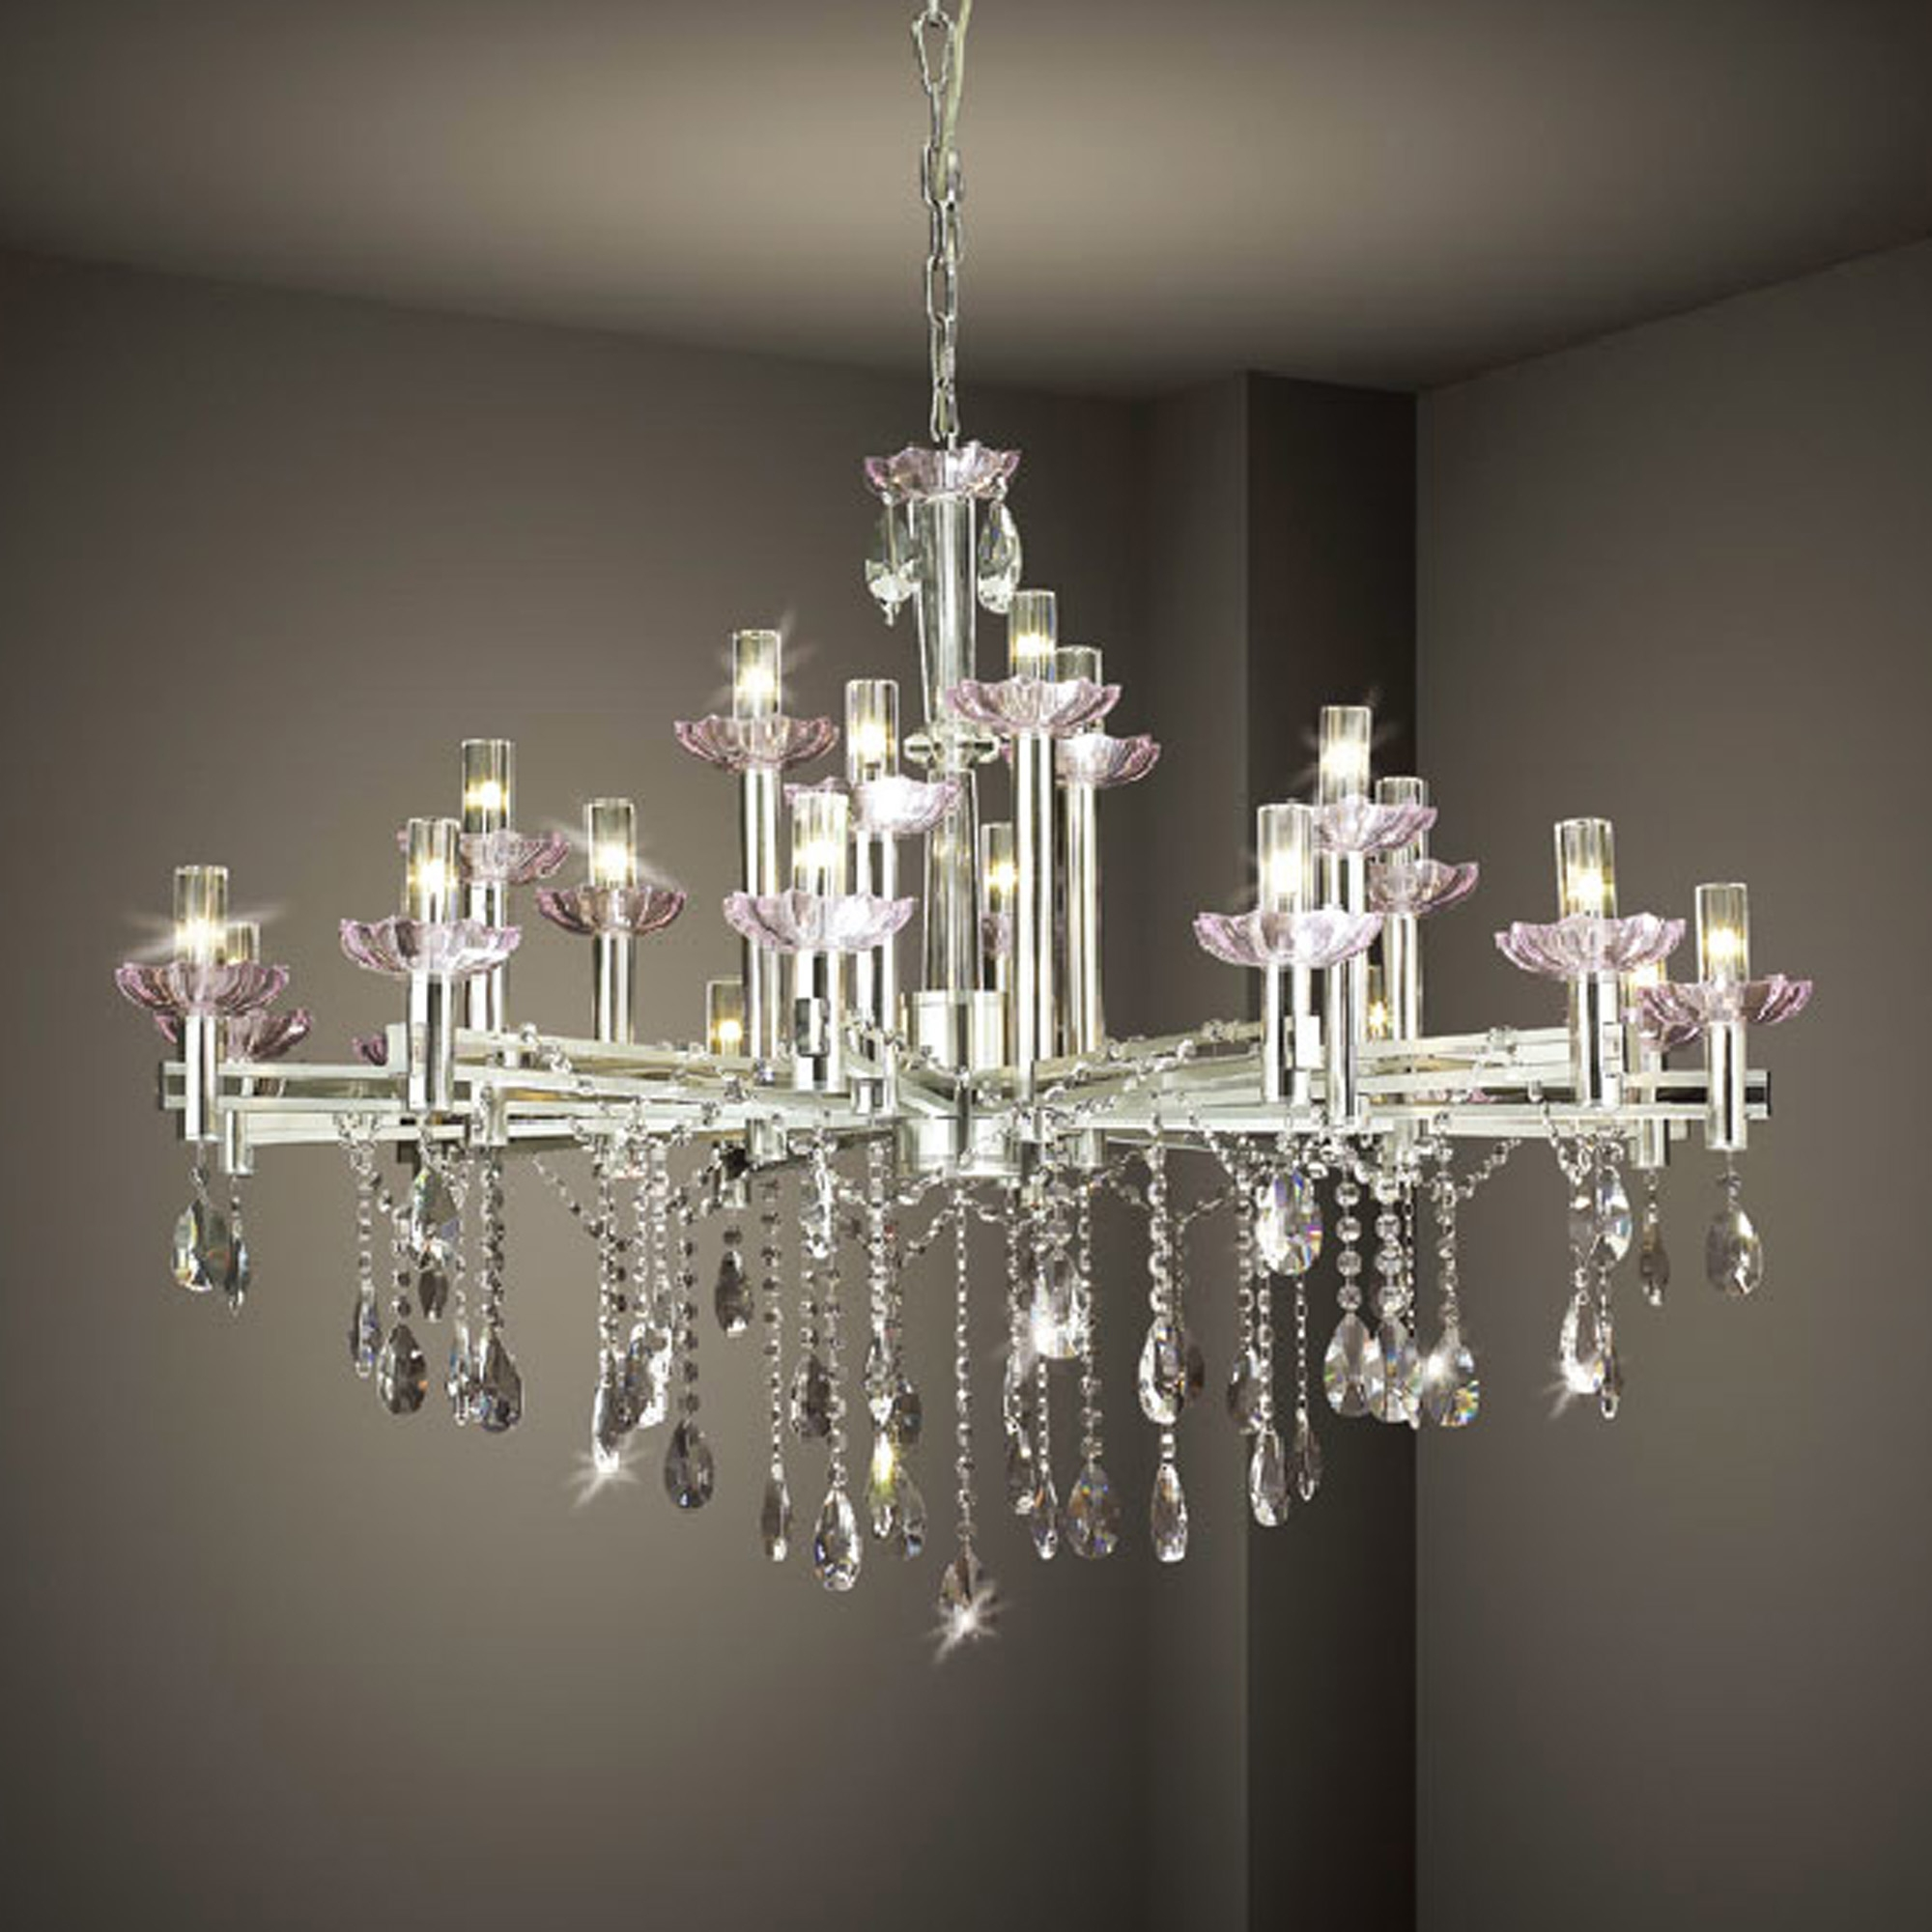 Chandelier Inspiring White Modern Chandelier Large Contemporary Intended For Large Contemporary Chandeliers (Image 5 of 15)